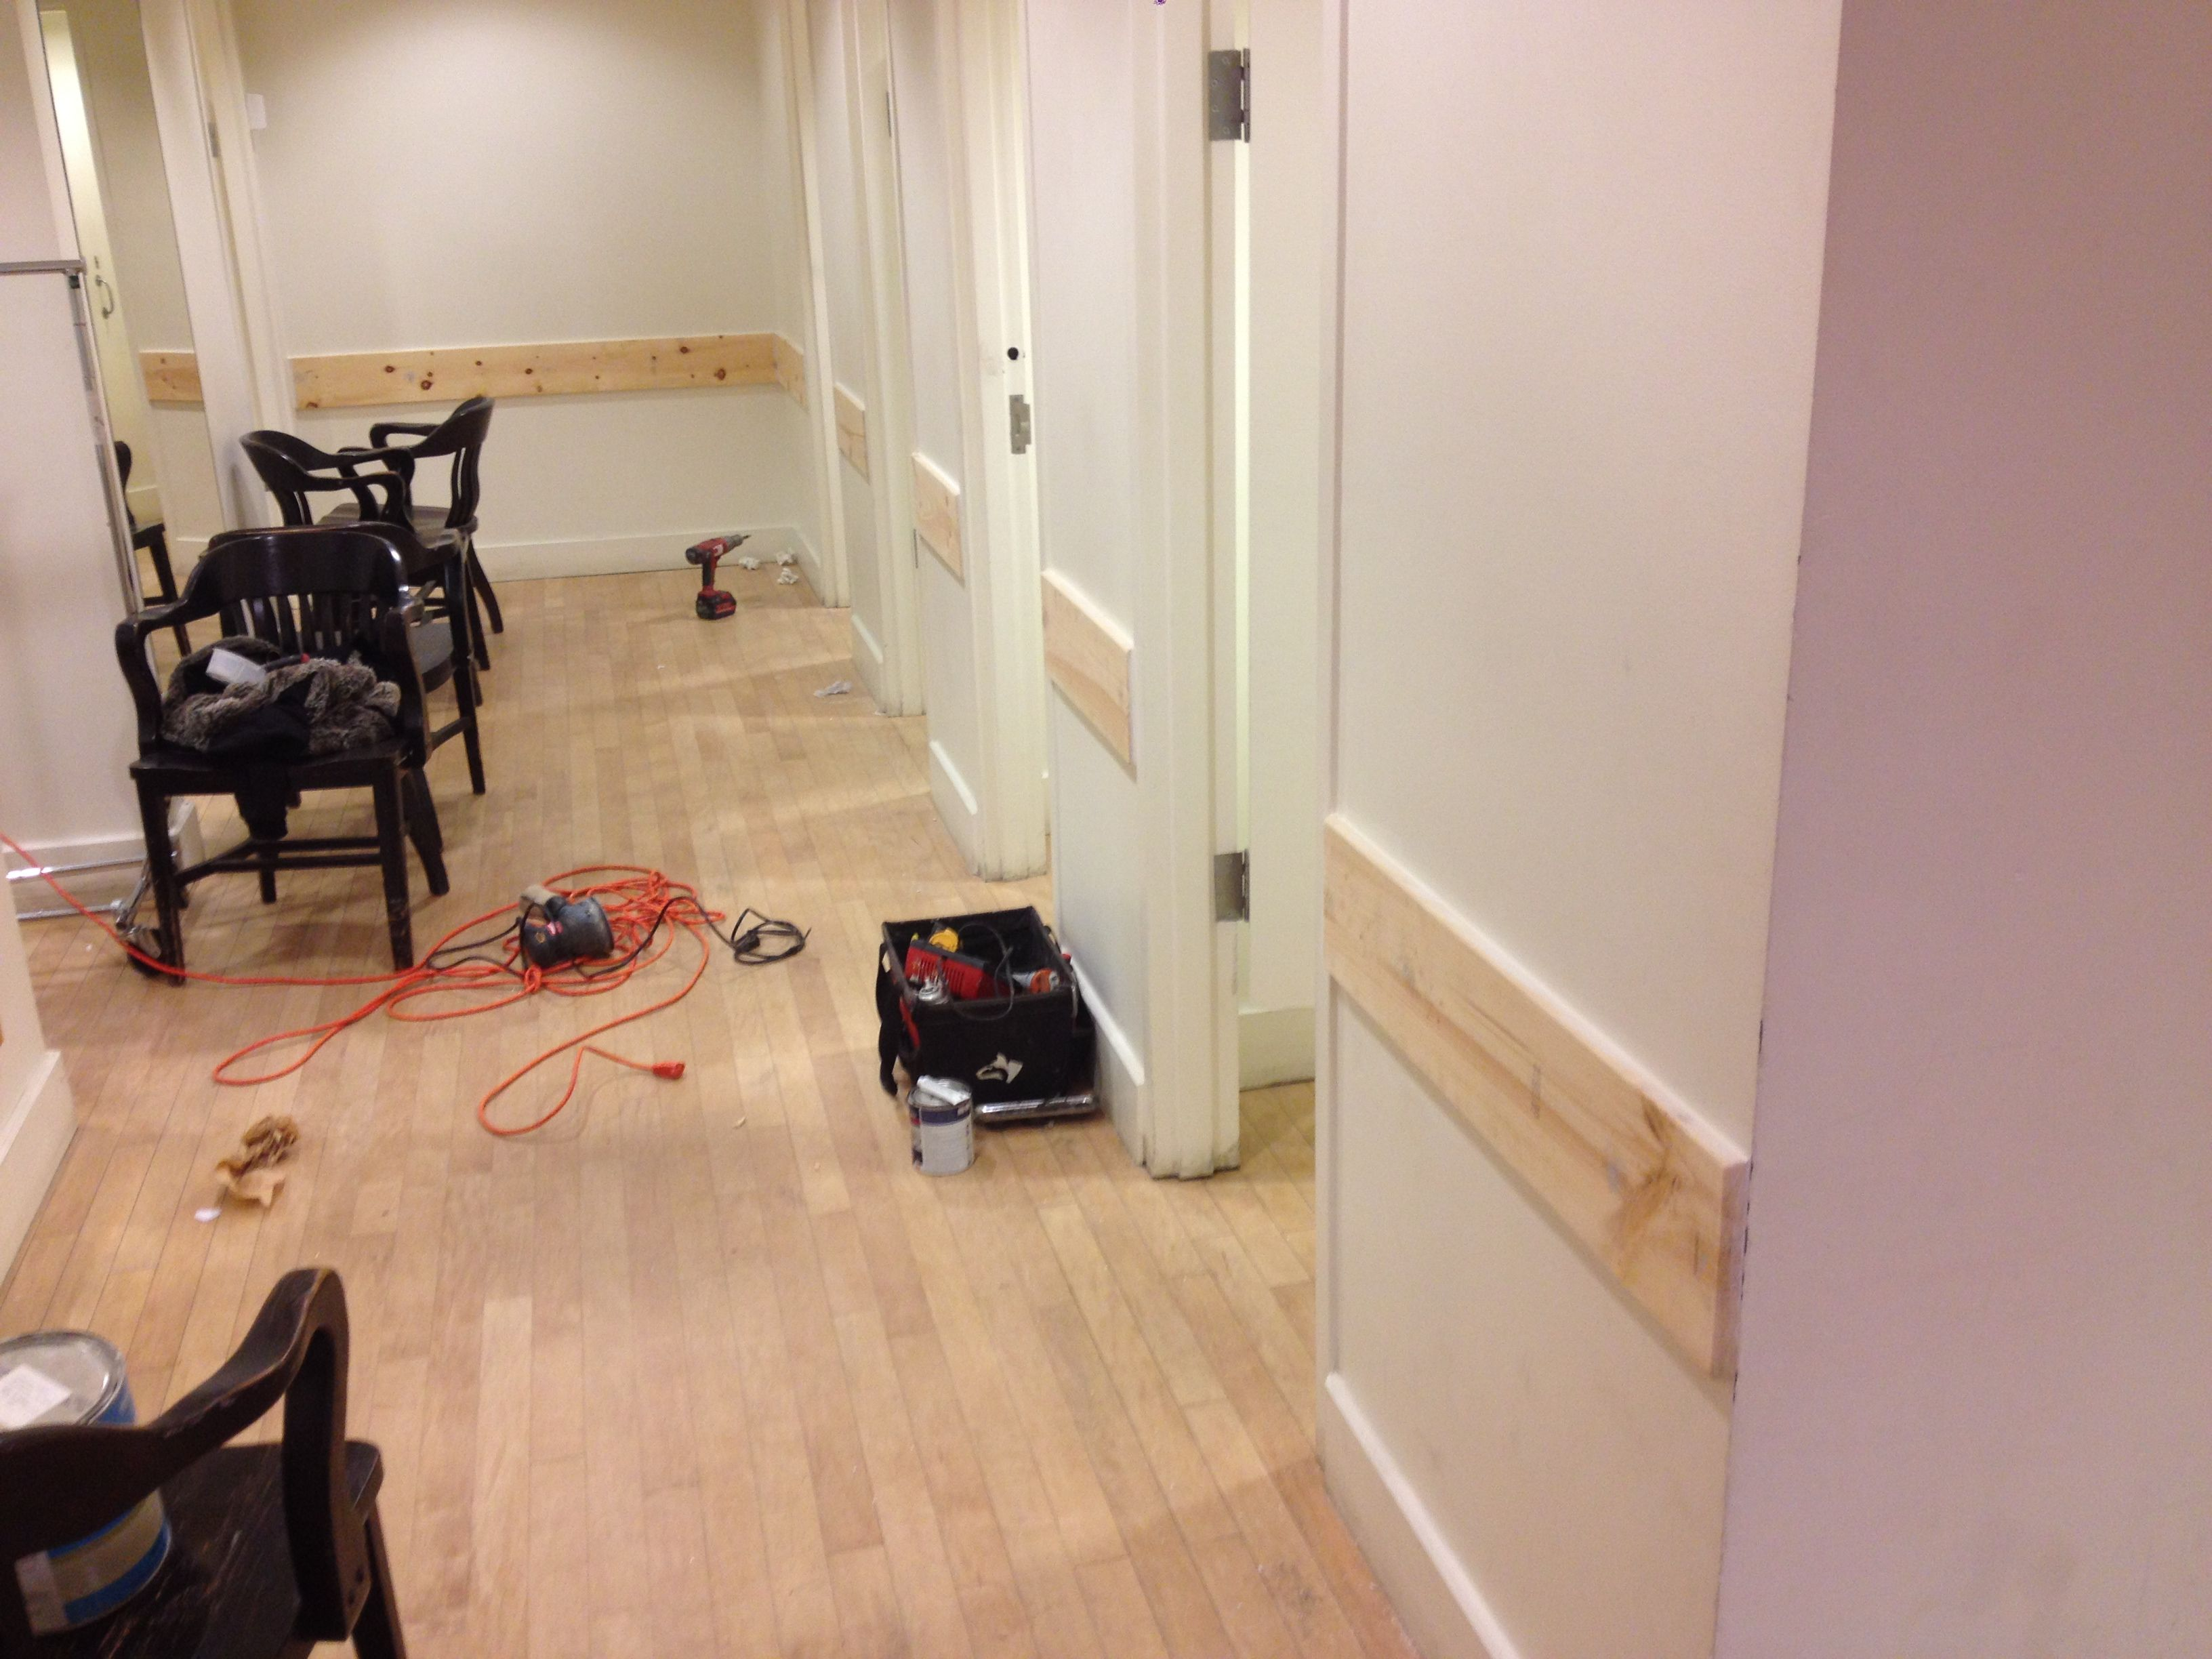 Installing wall guards..